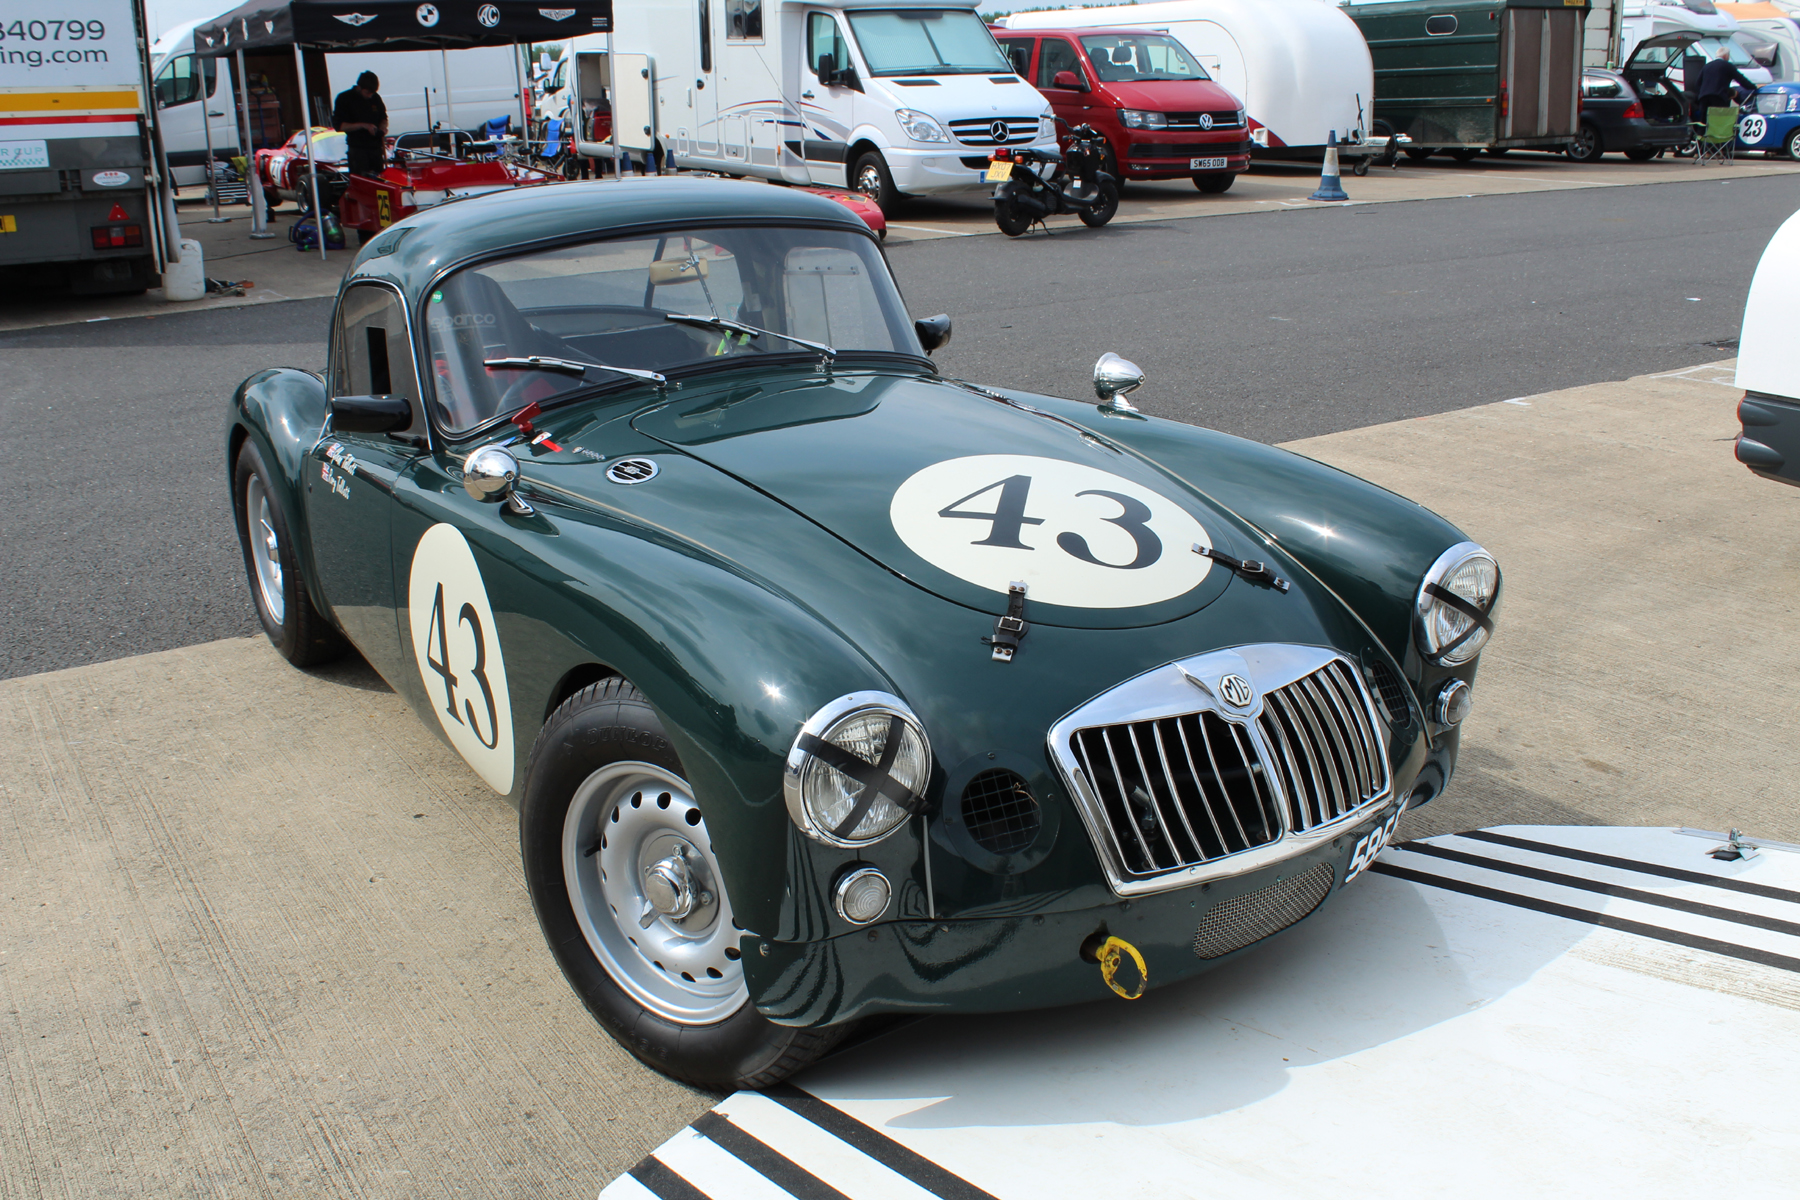 Glenn Tollett's MGA Coupe at repose prior to race. Photo - John Turner